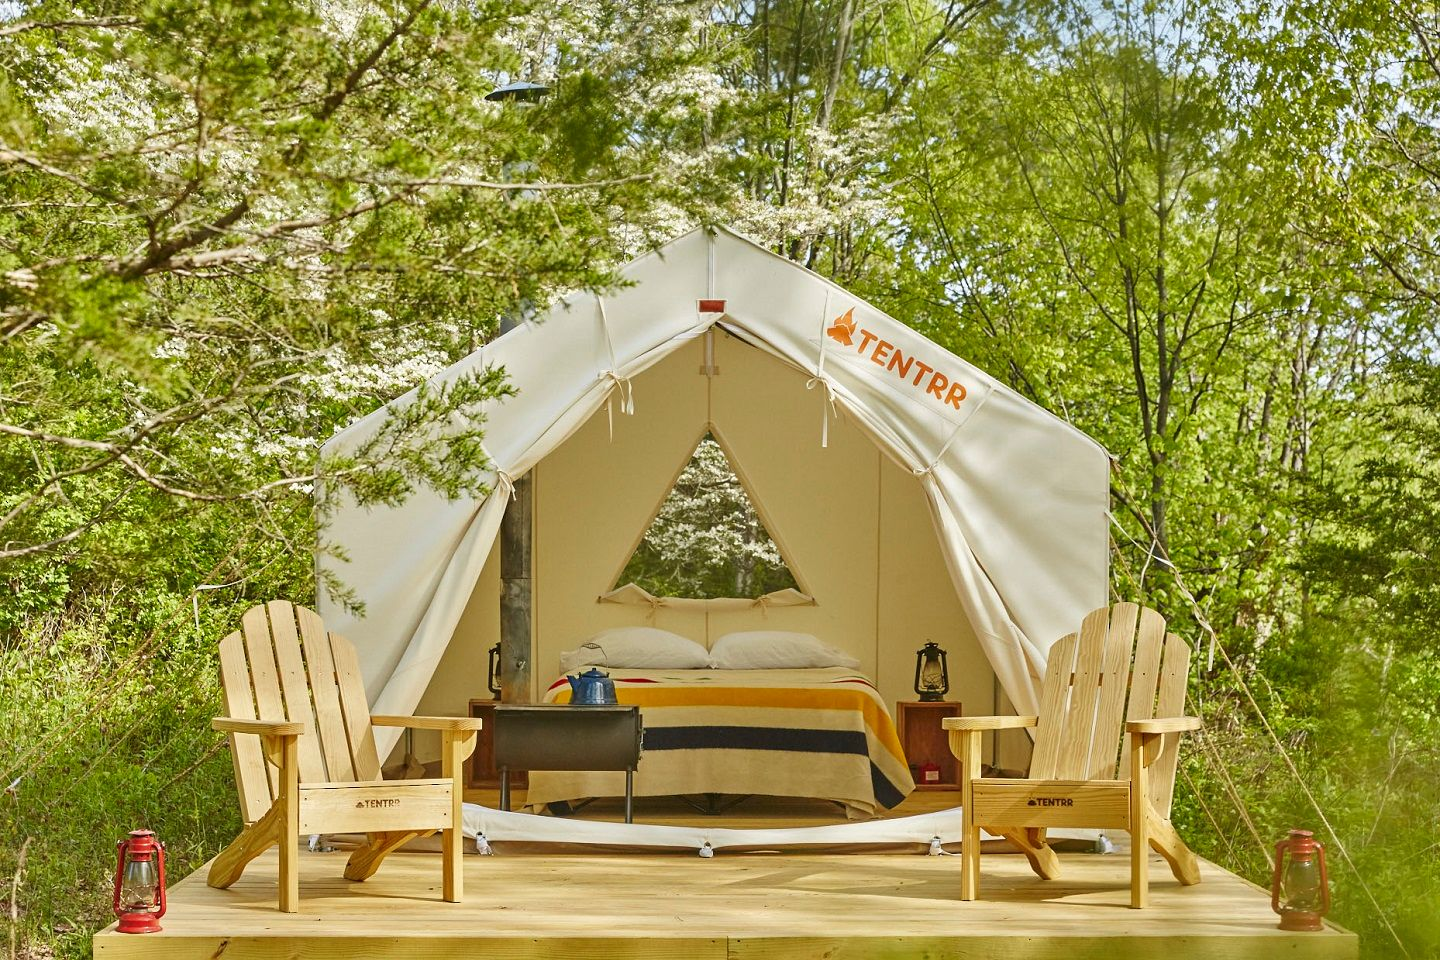 Tentrr tent with queen bed and Adirondack chairs in the woods.